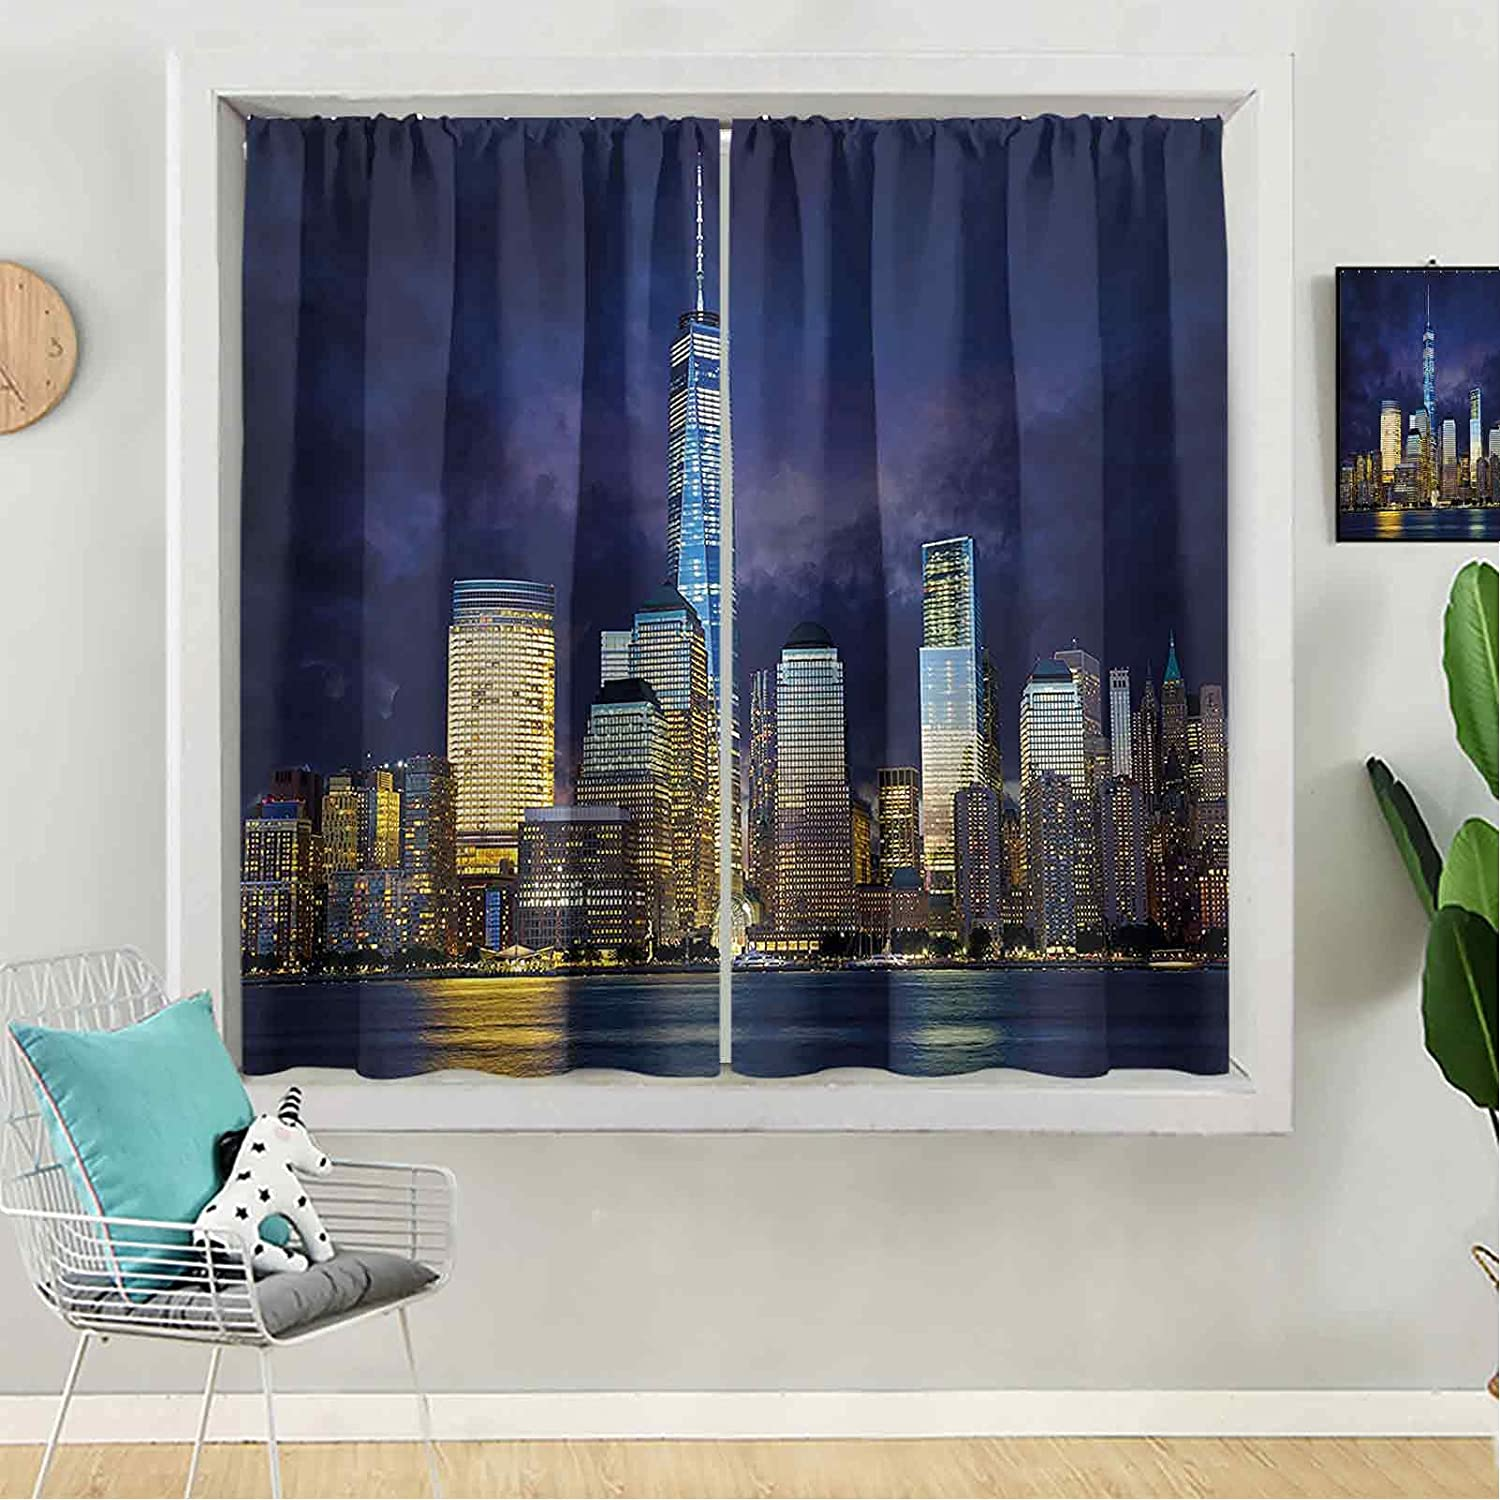 Blackout Curtains for Bedroom 63 Cur Room Long inches Super beauty product restock Kansas City Mall quality top Darkening